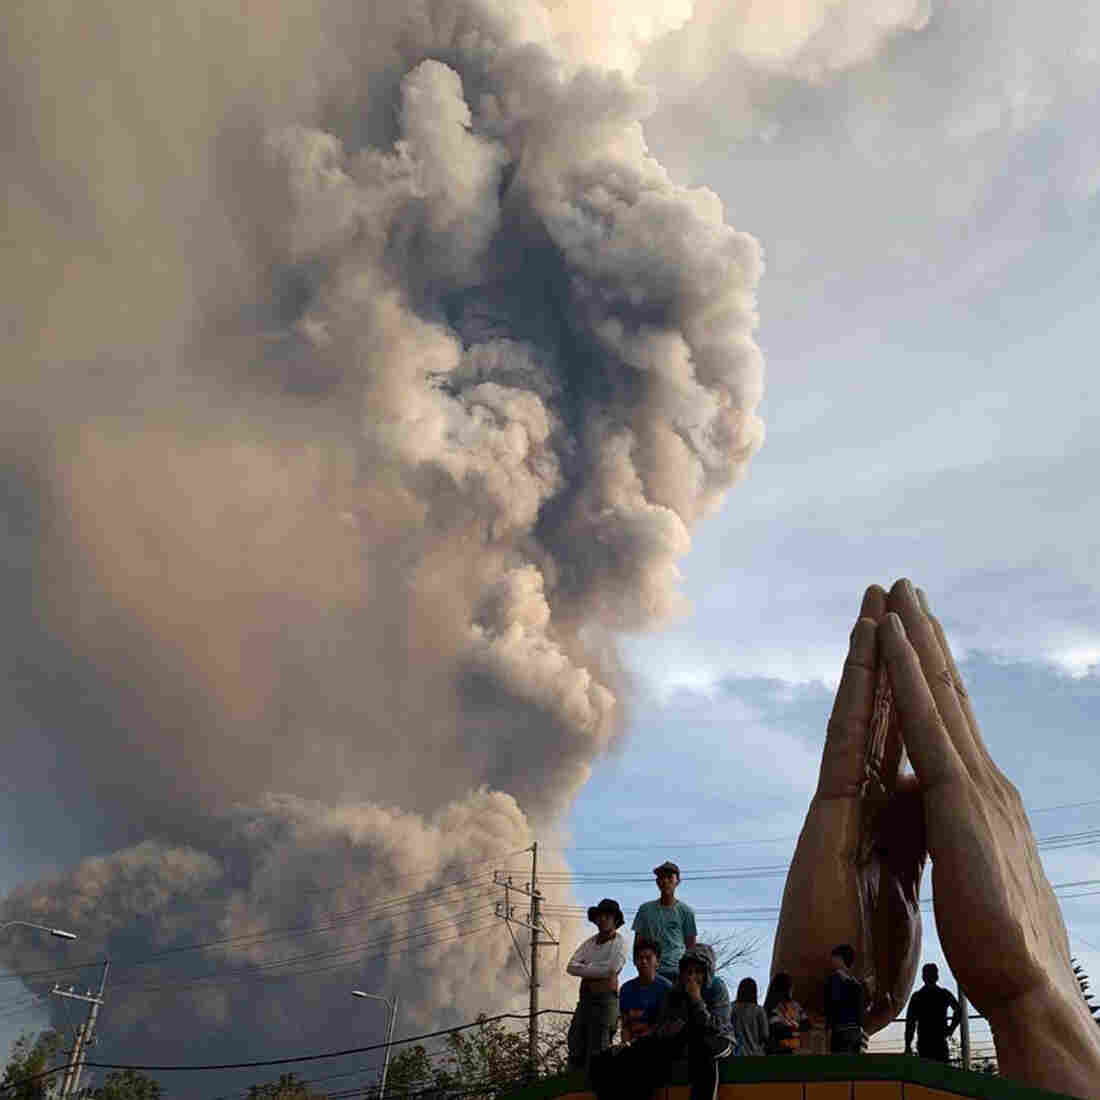 Westlake Legal Group ap_20012452079067_sq-90e4ed00c166576485b51bf8261609848ec9f56b-s1100-c15 Volcanic Eruption In Philippines Causes Thousands To Flee